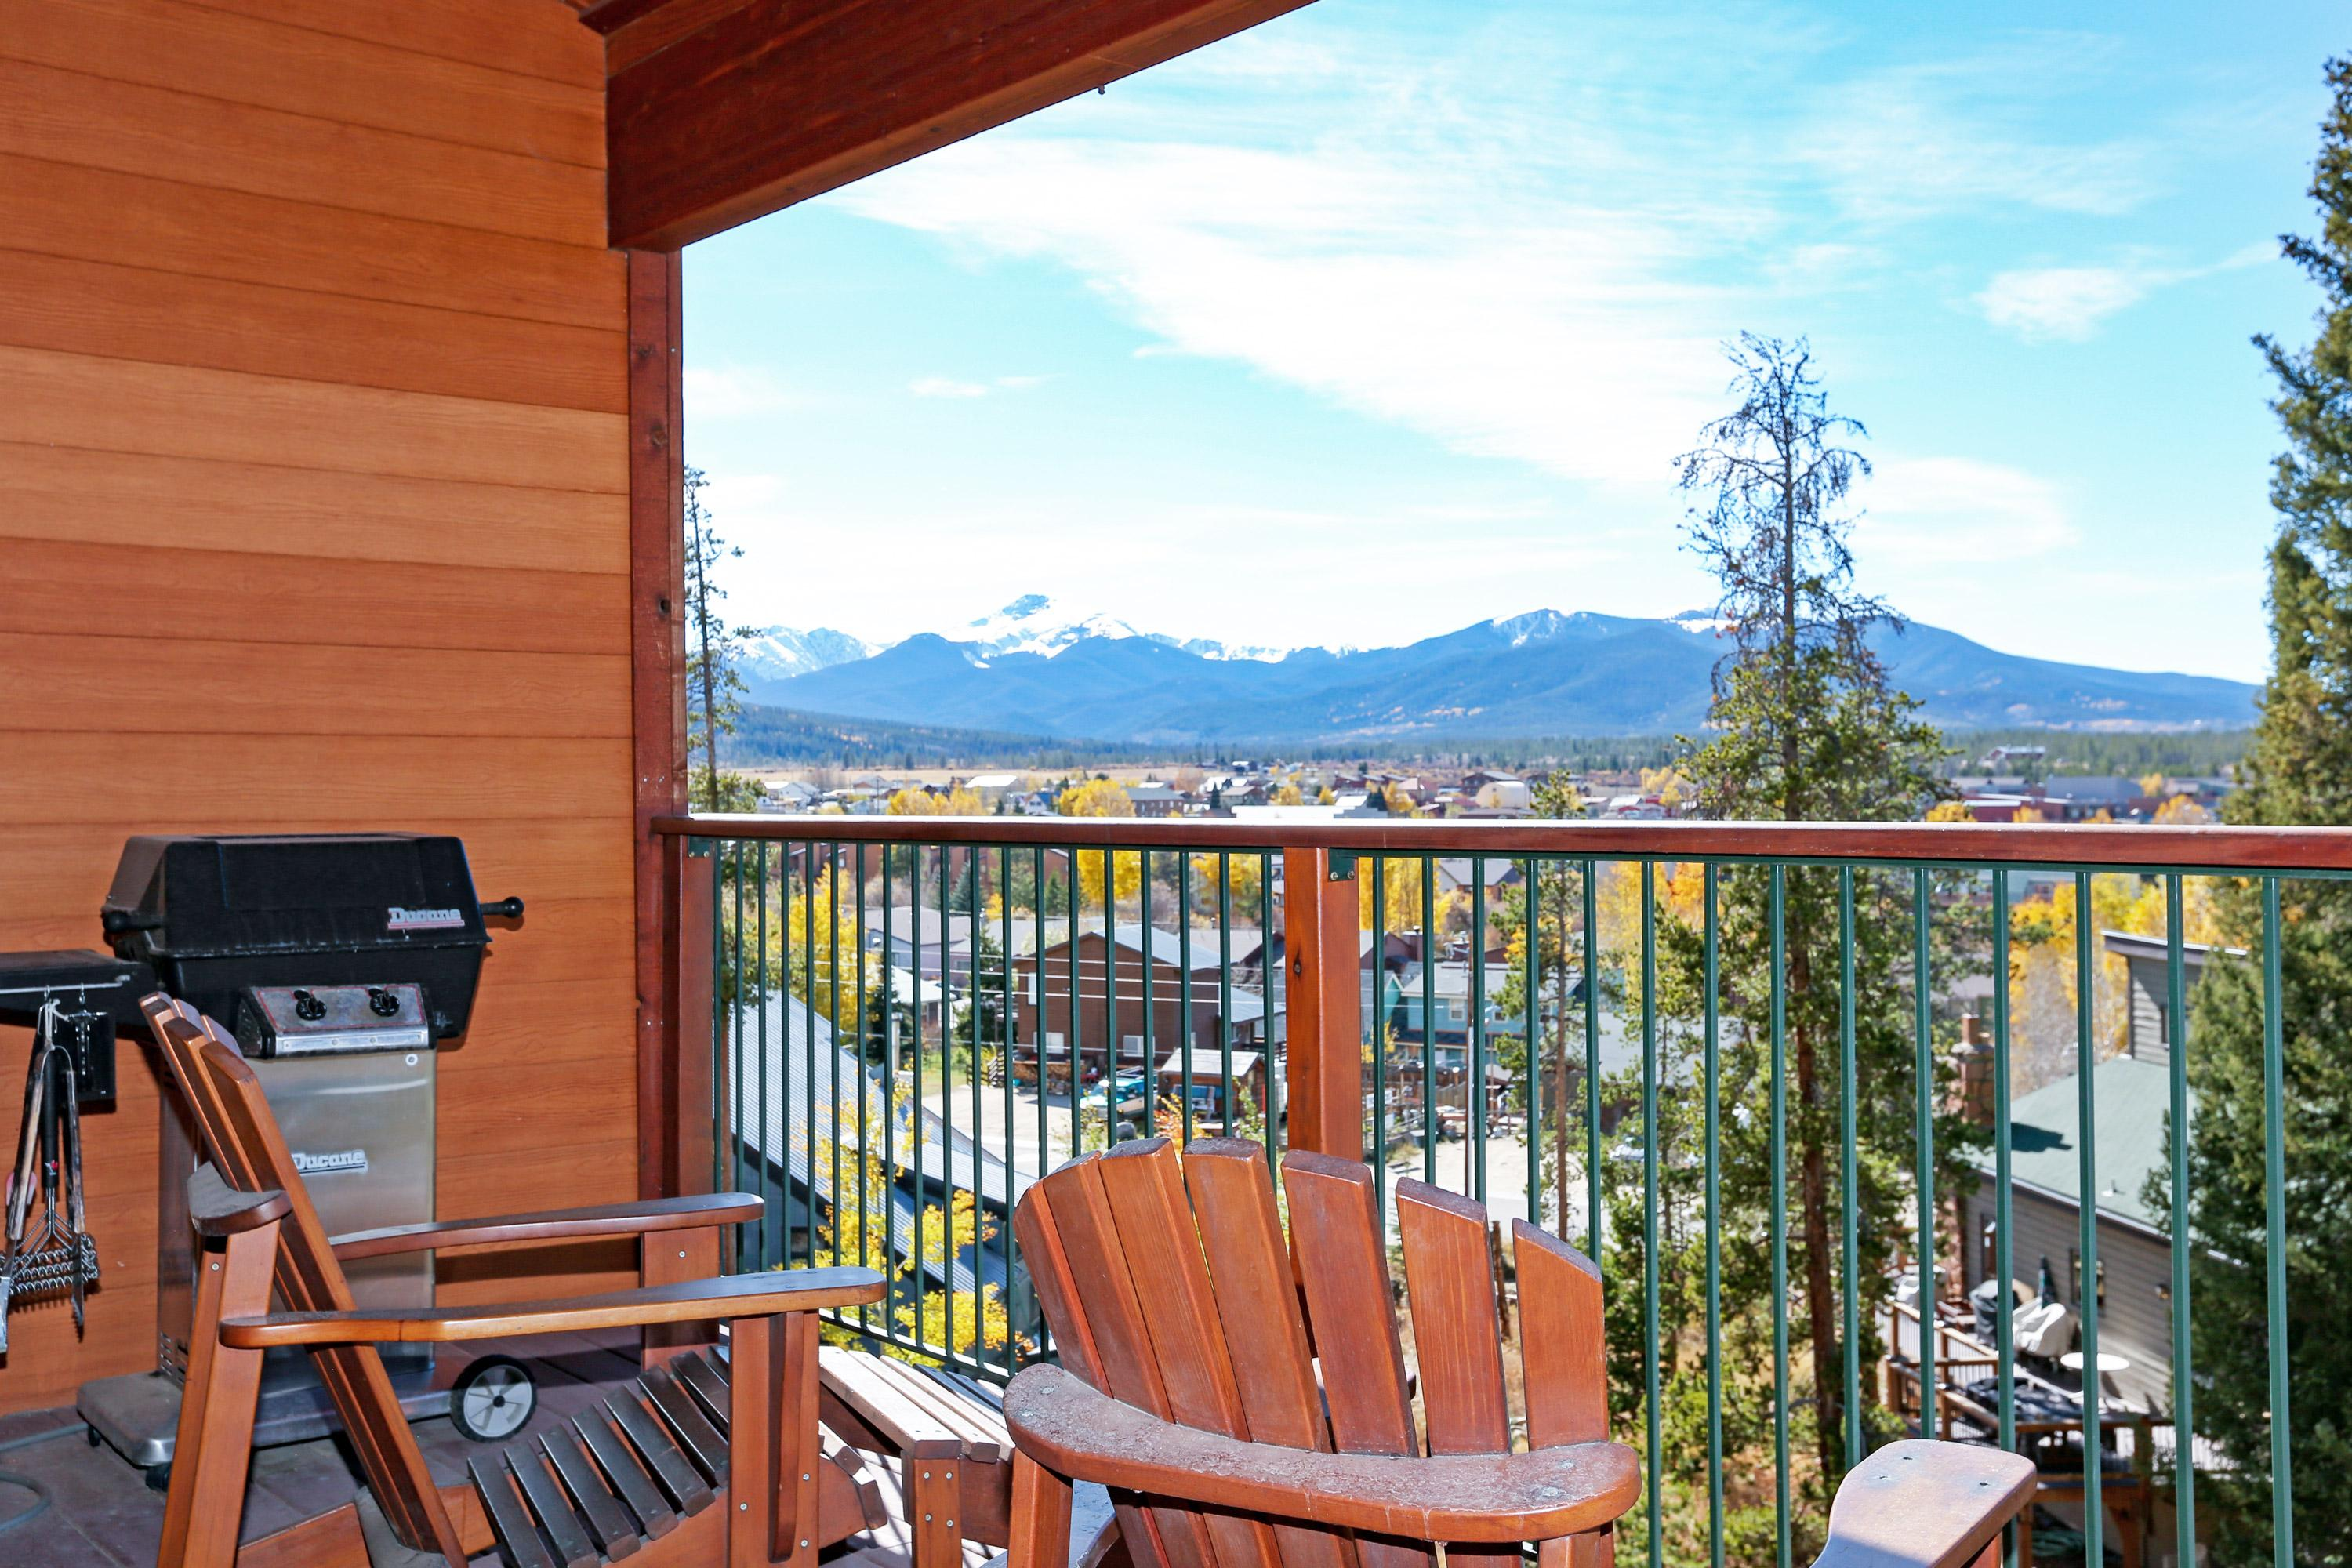 Welcome to your Winter Park rental! Kick back and enjoy the mountain views from one of 2 private balconies.